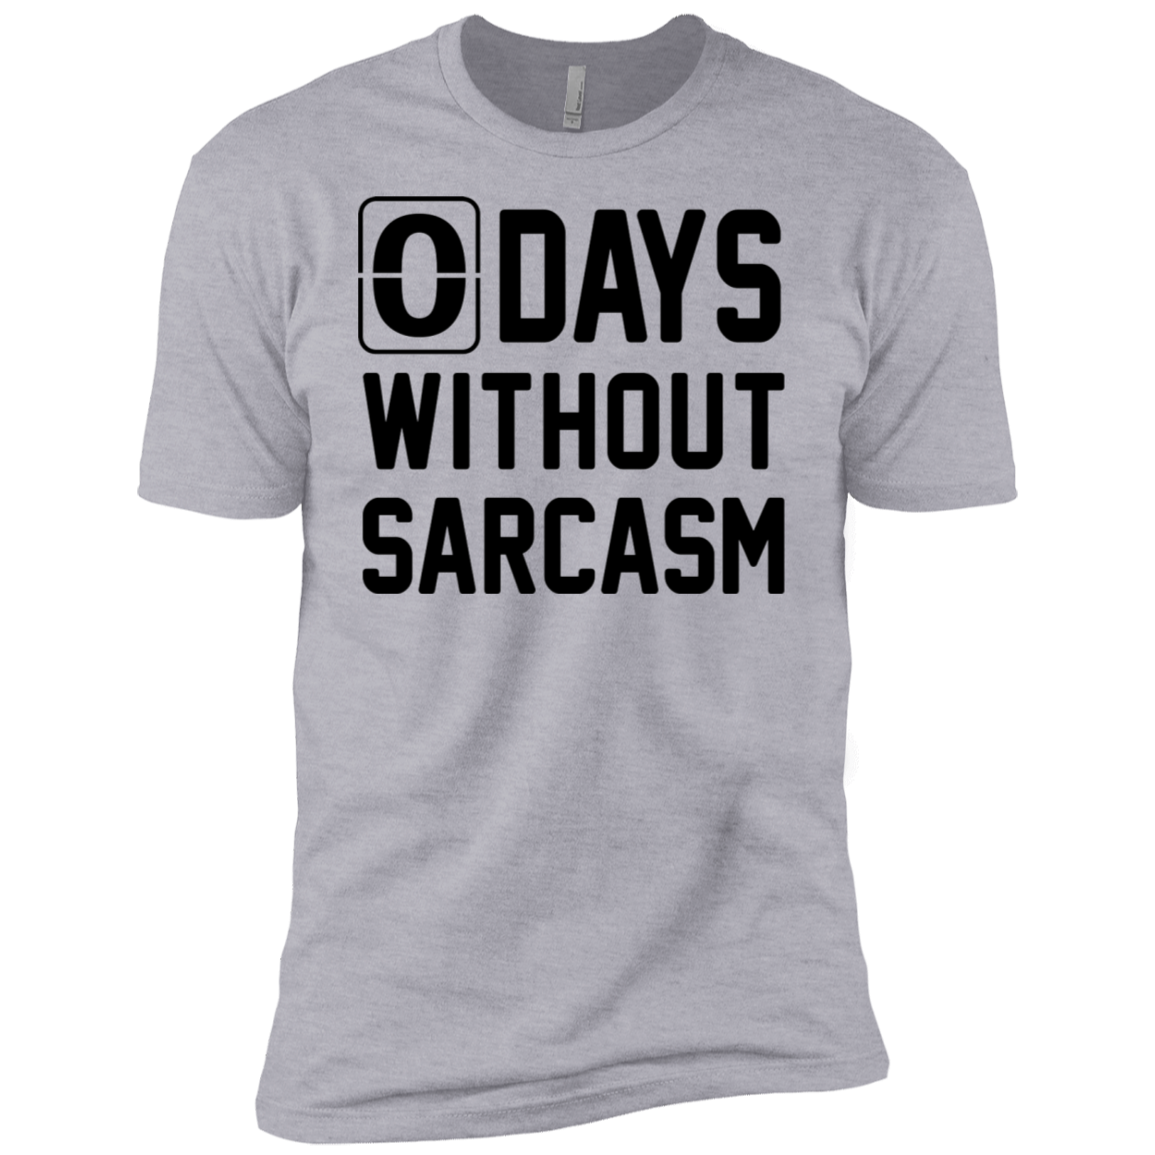 No Days without Sarcasm Men's Classic Tee